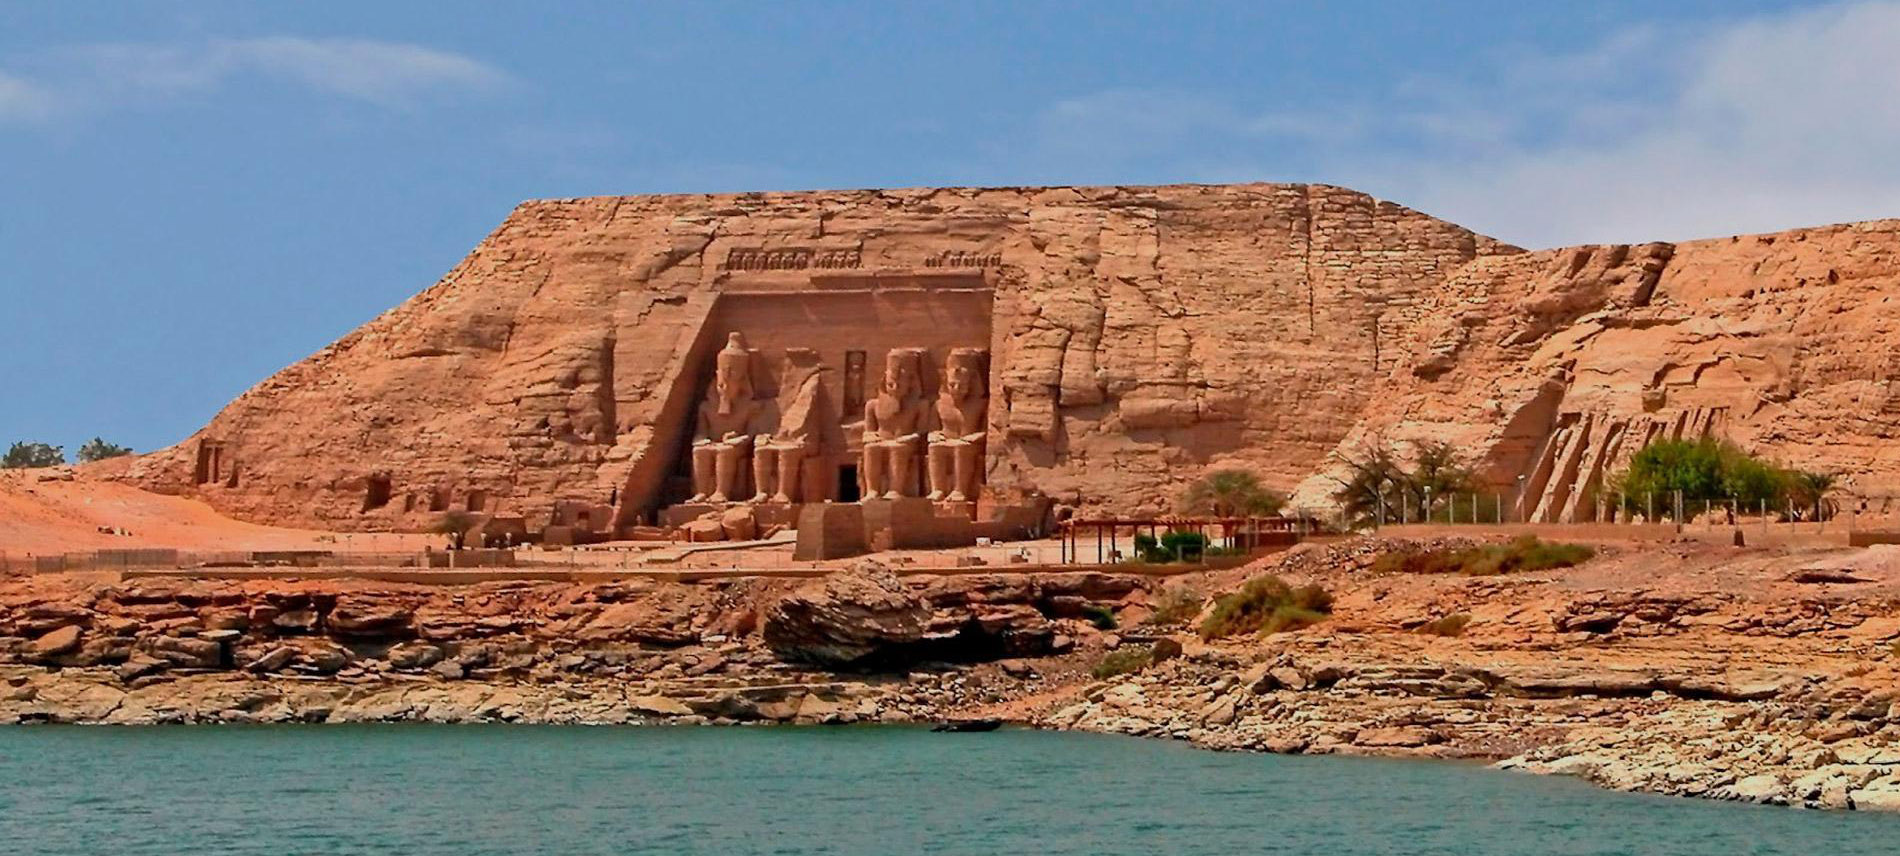 Cairo Alexandria Nile Cruise & Hurghada 14 Day Tour Package